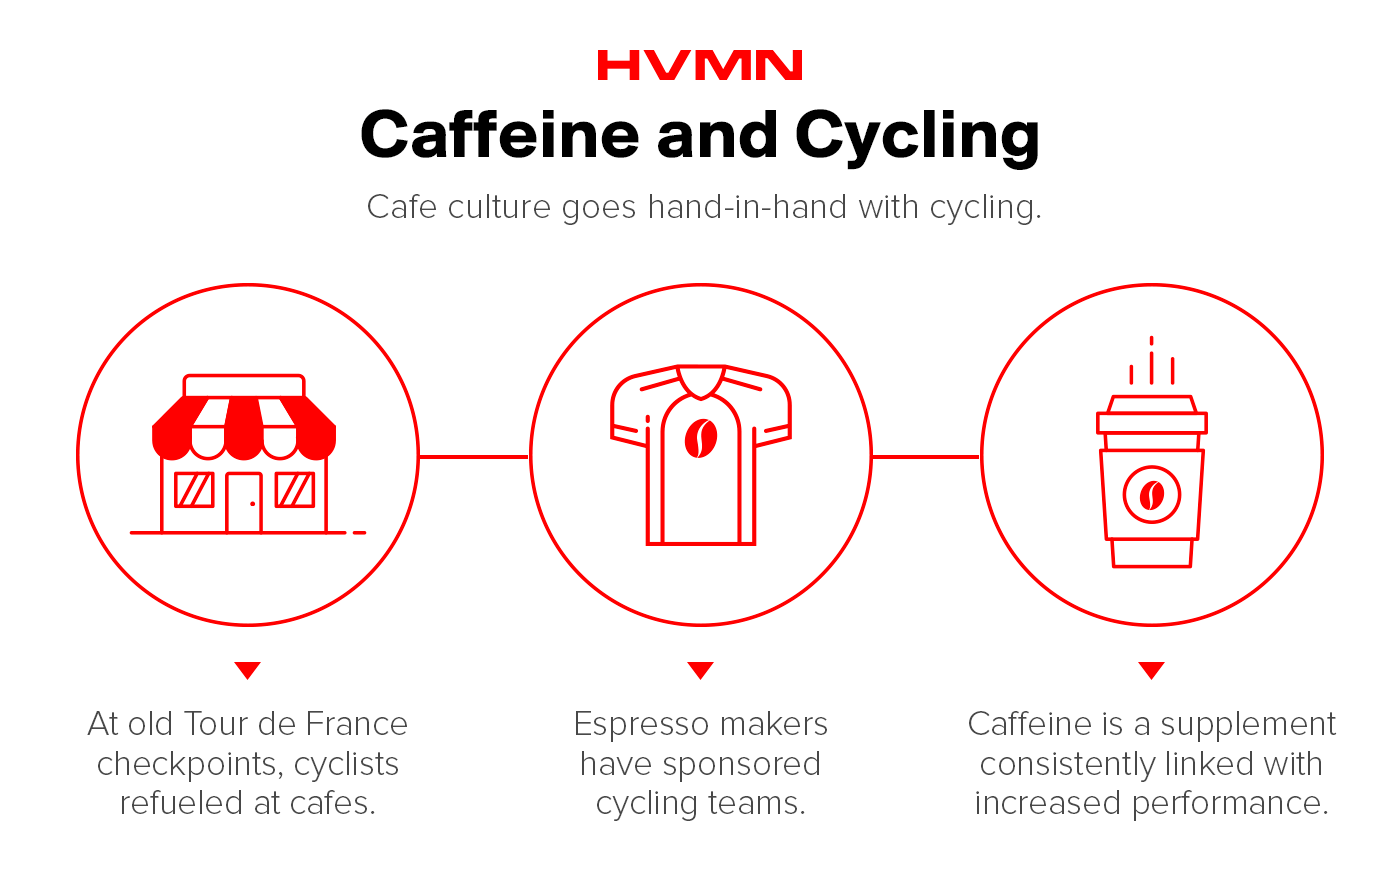 Illustrations of a cafe, a cycling jersey and a cup of coffee showing the link between caffeine and cycling